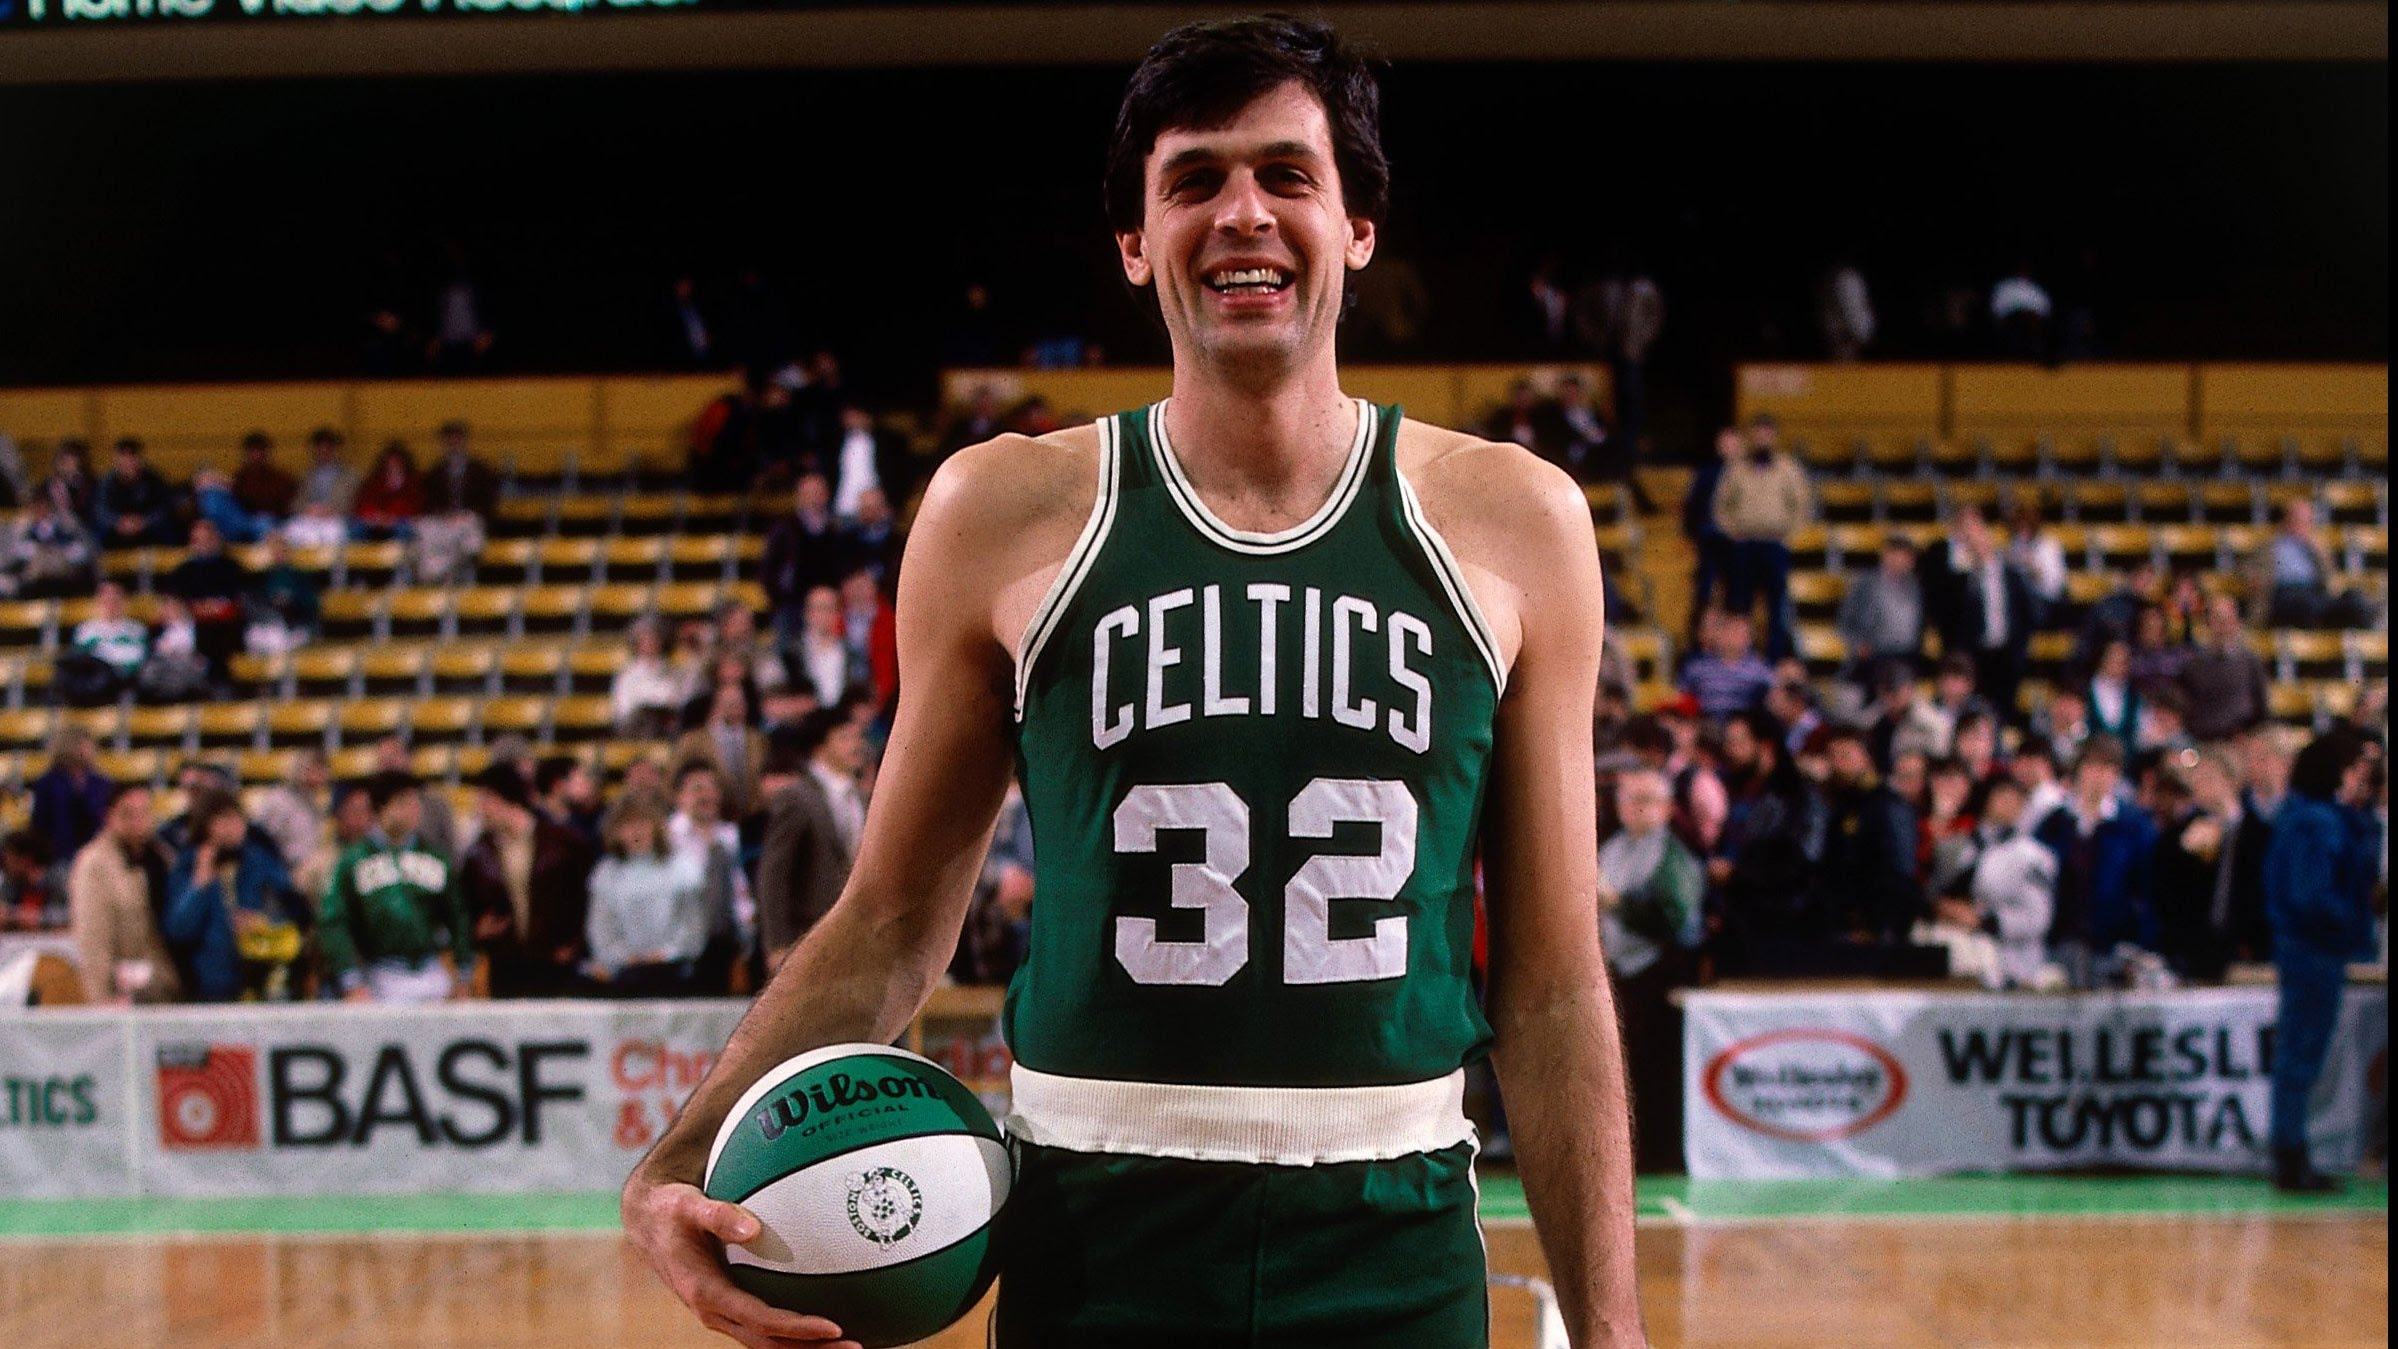 Kevin McHale-YOUNG